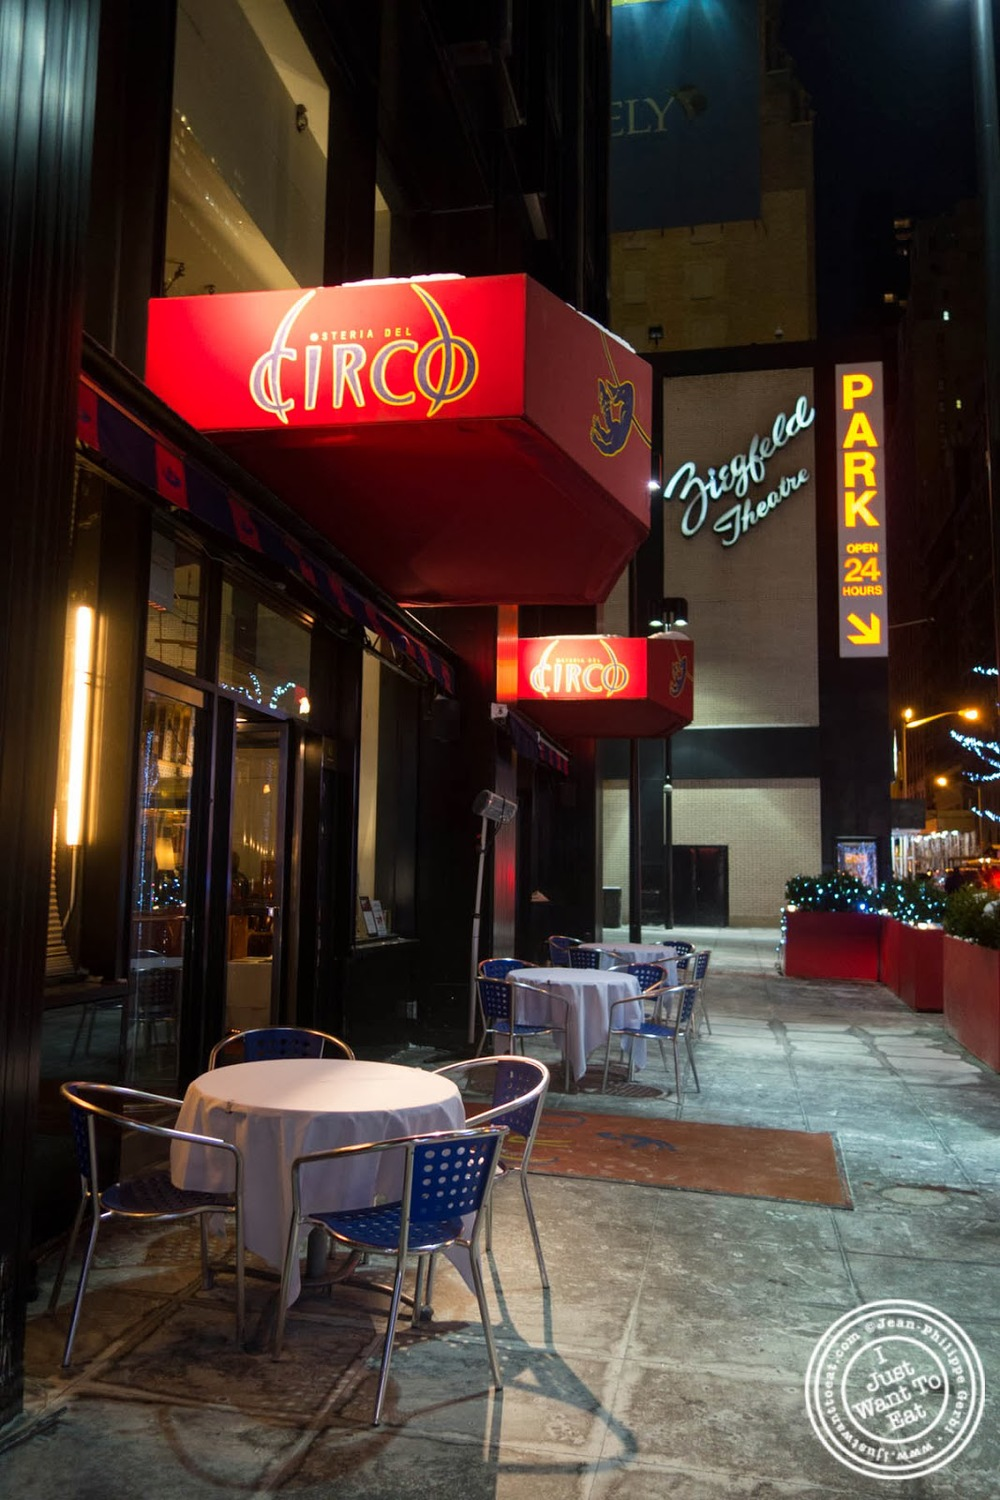 image of Circo in NYC, New York